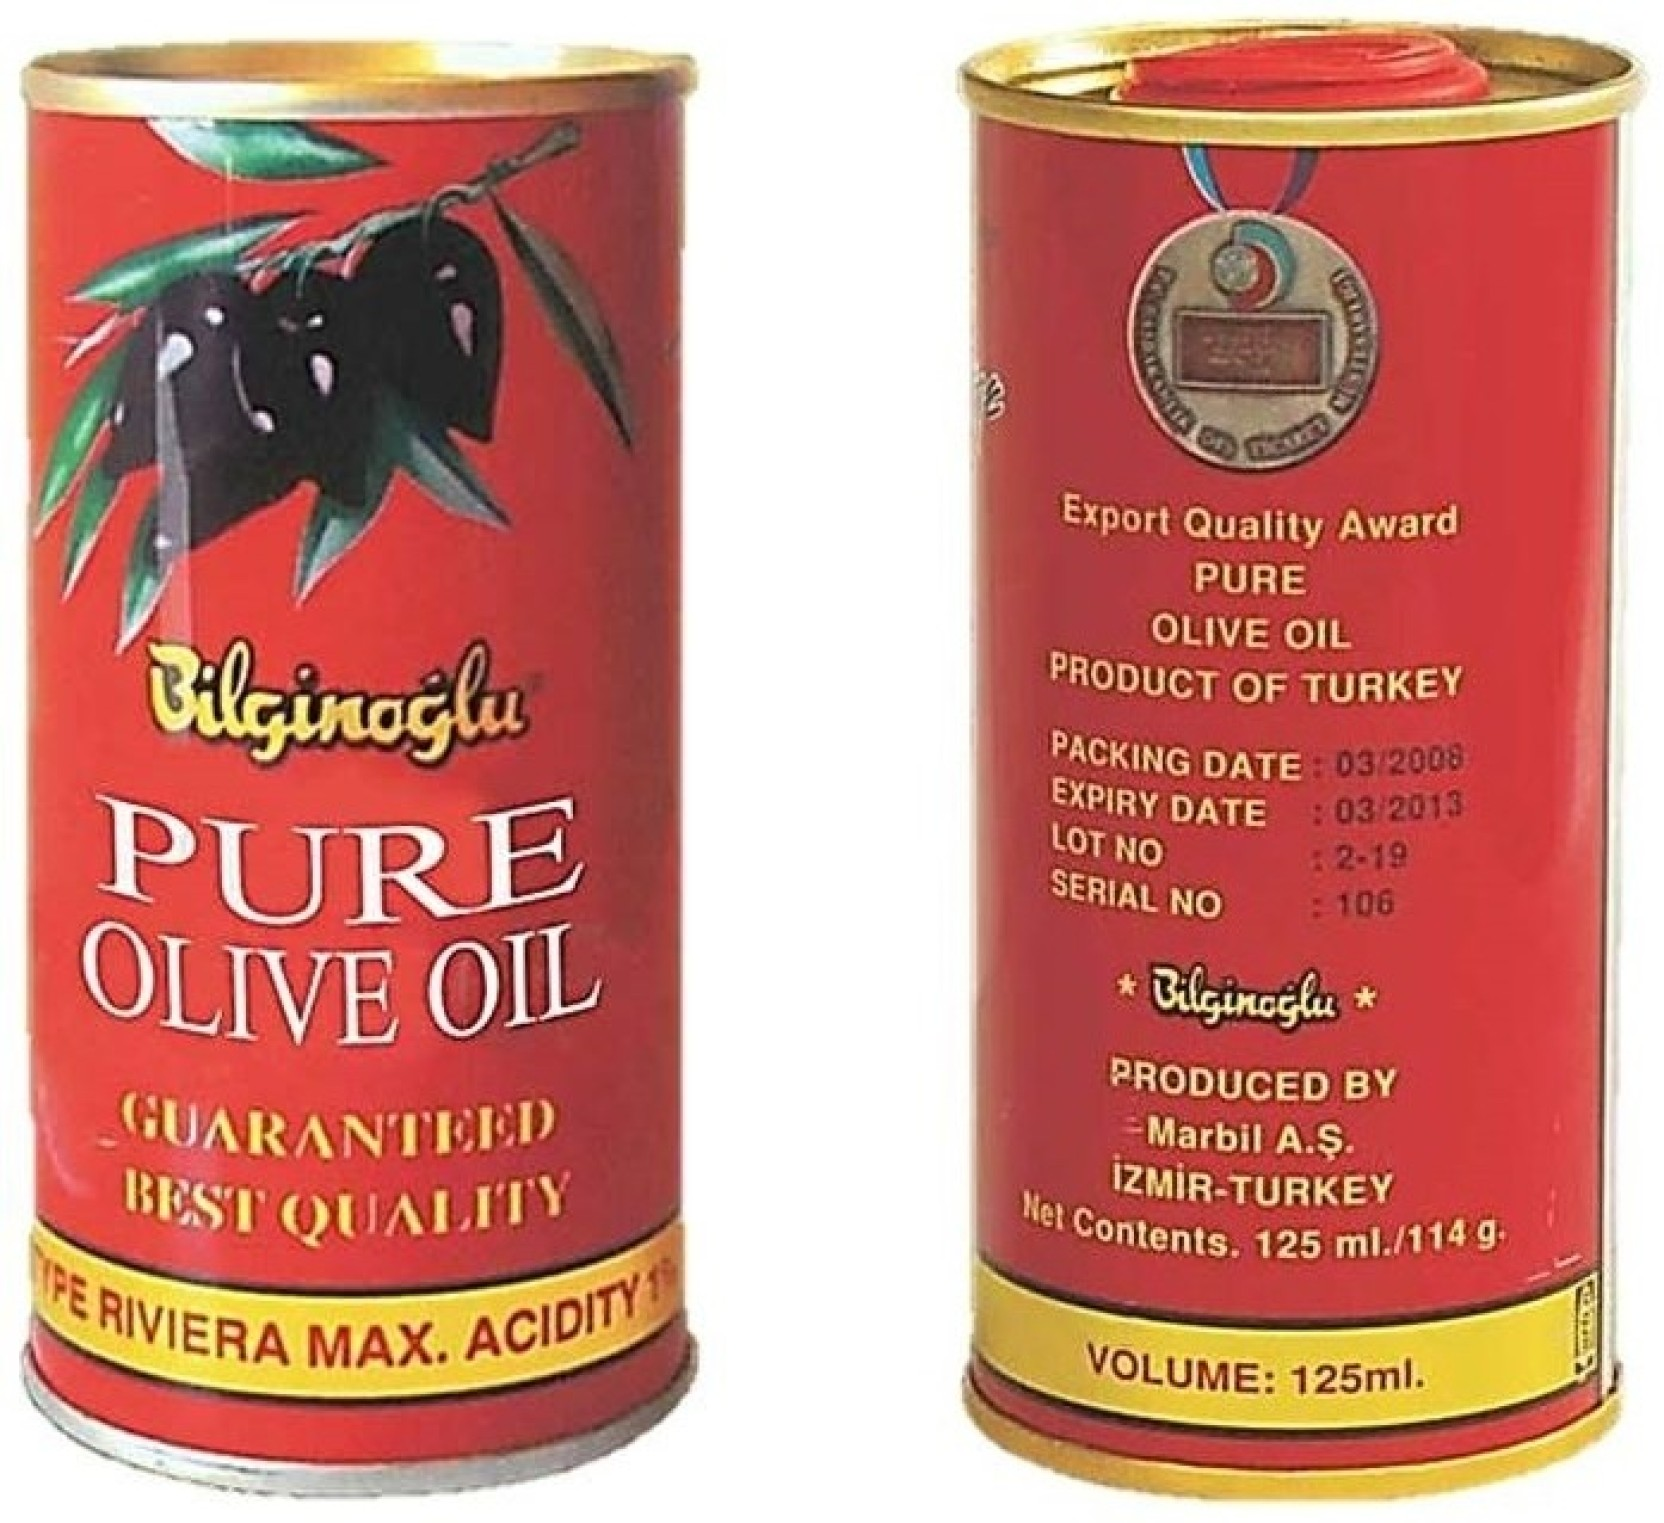 Bilginoglu Pure Olive Oil Price In India Buy Bilginoglu